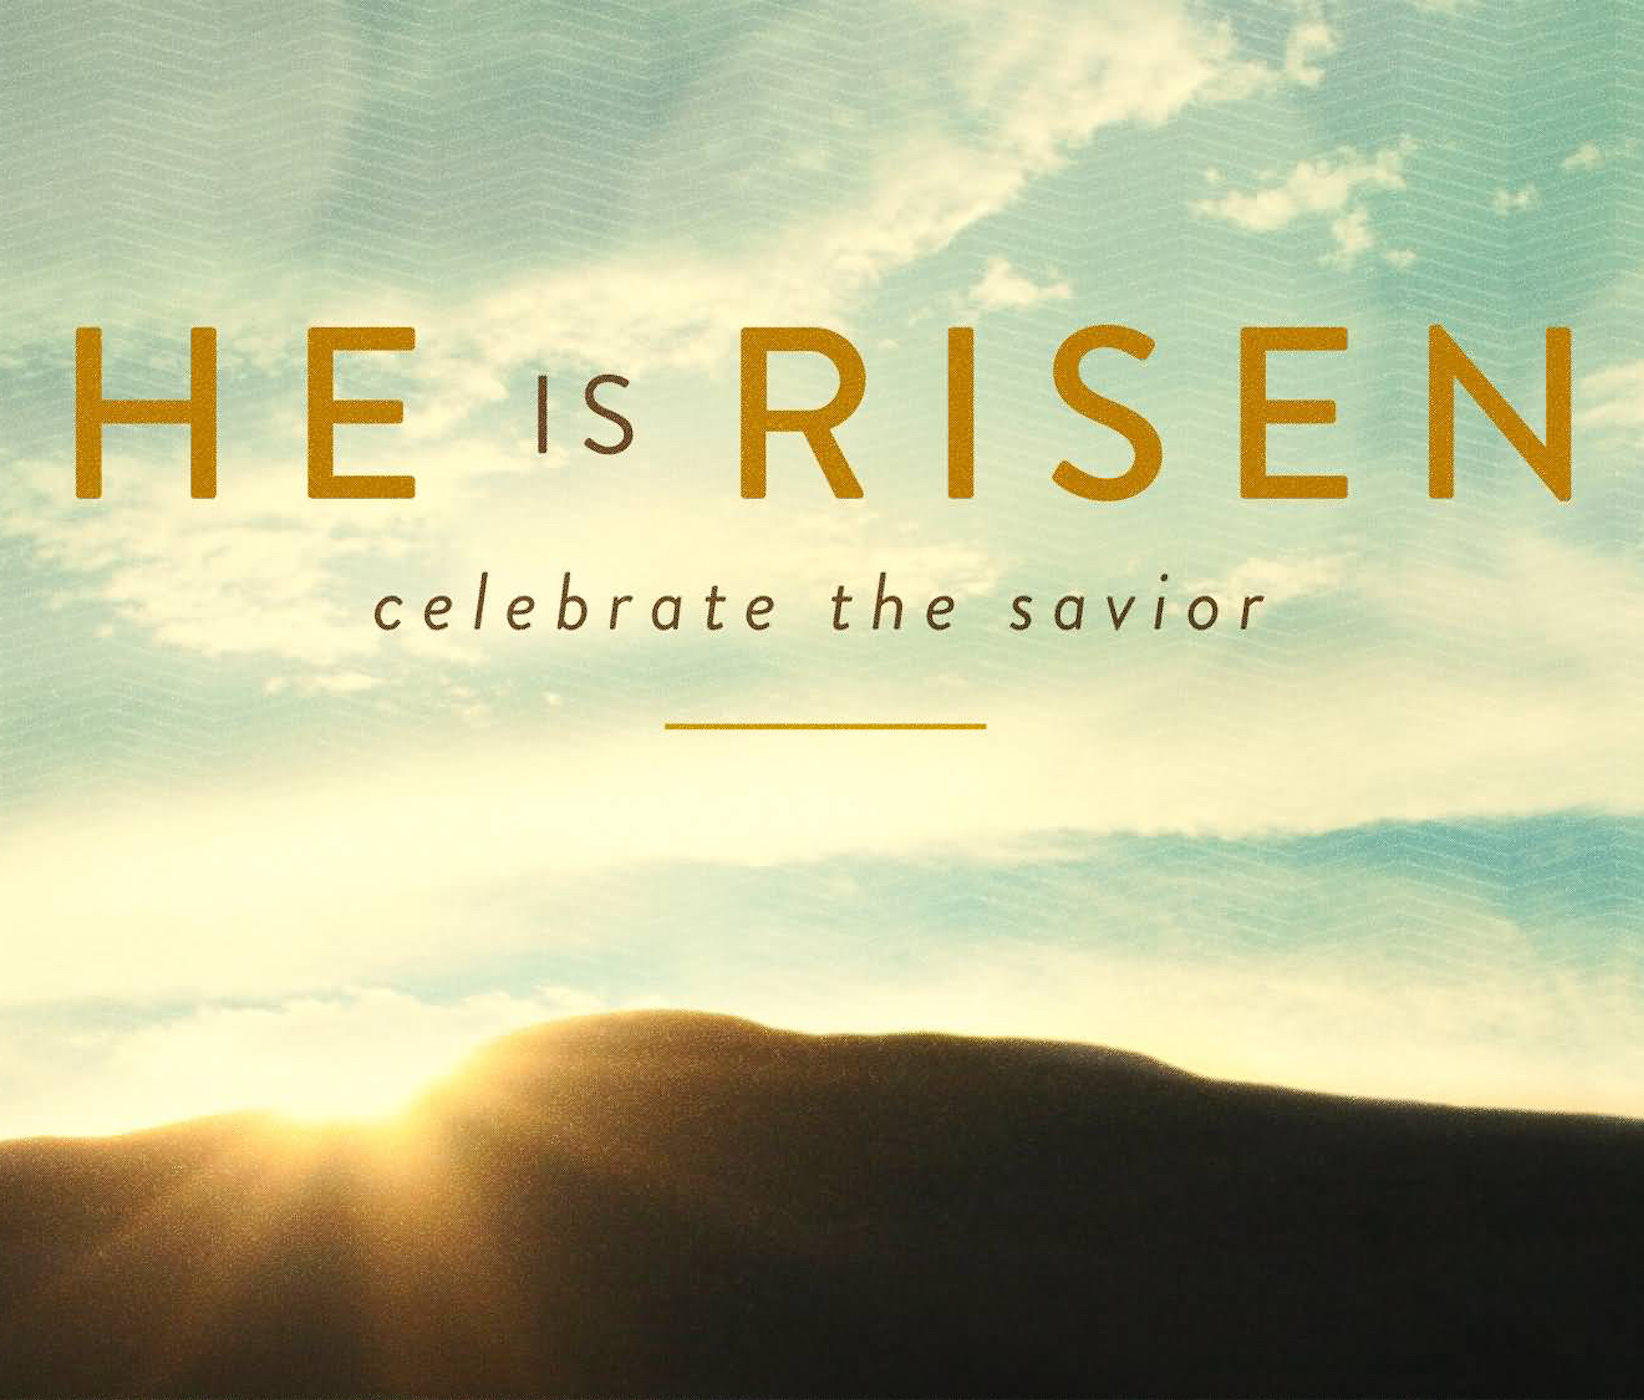 He-Is-Risen-Celebrate-The-Savior-Easter-Sunday